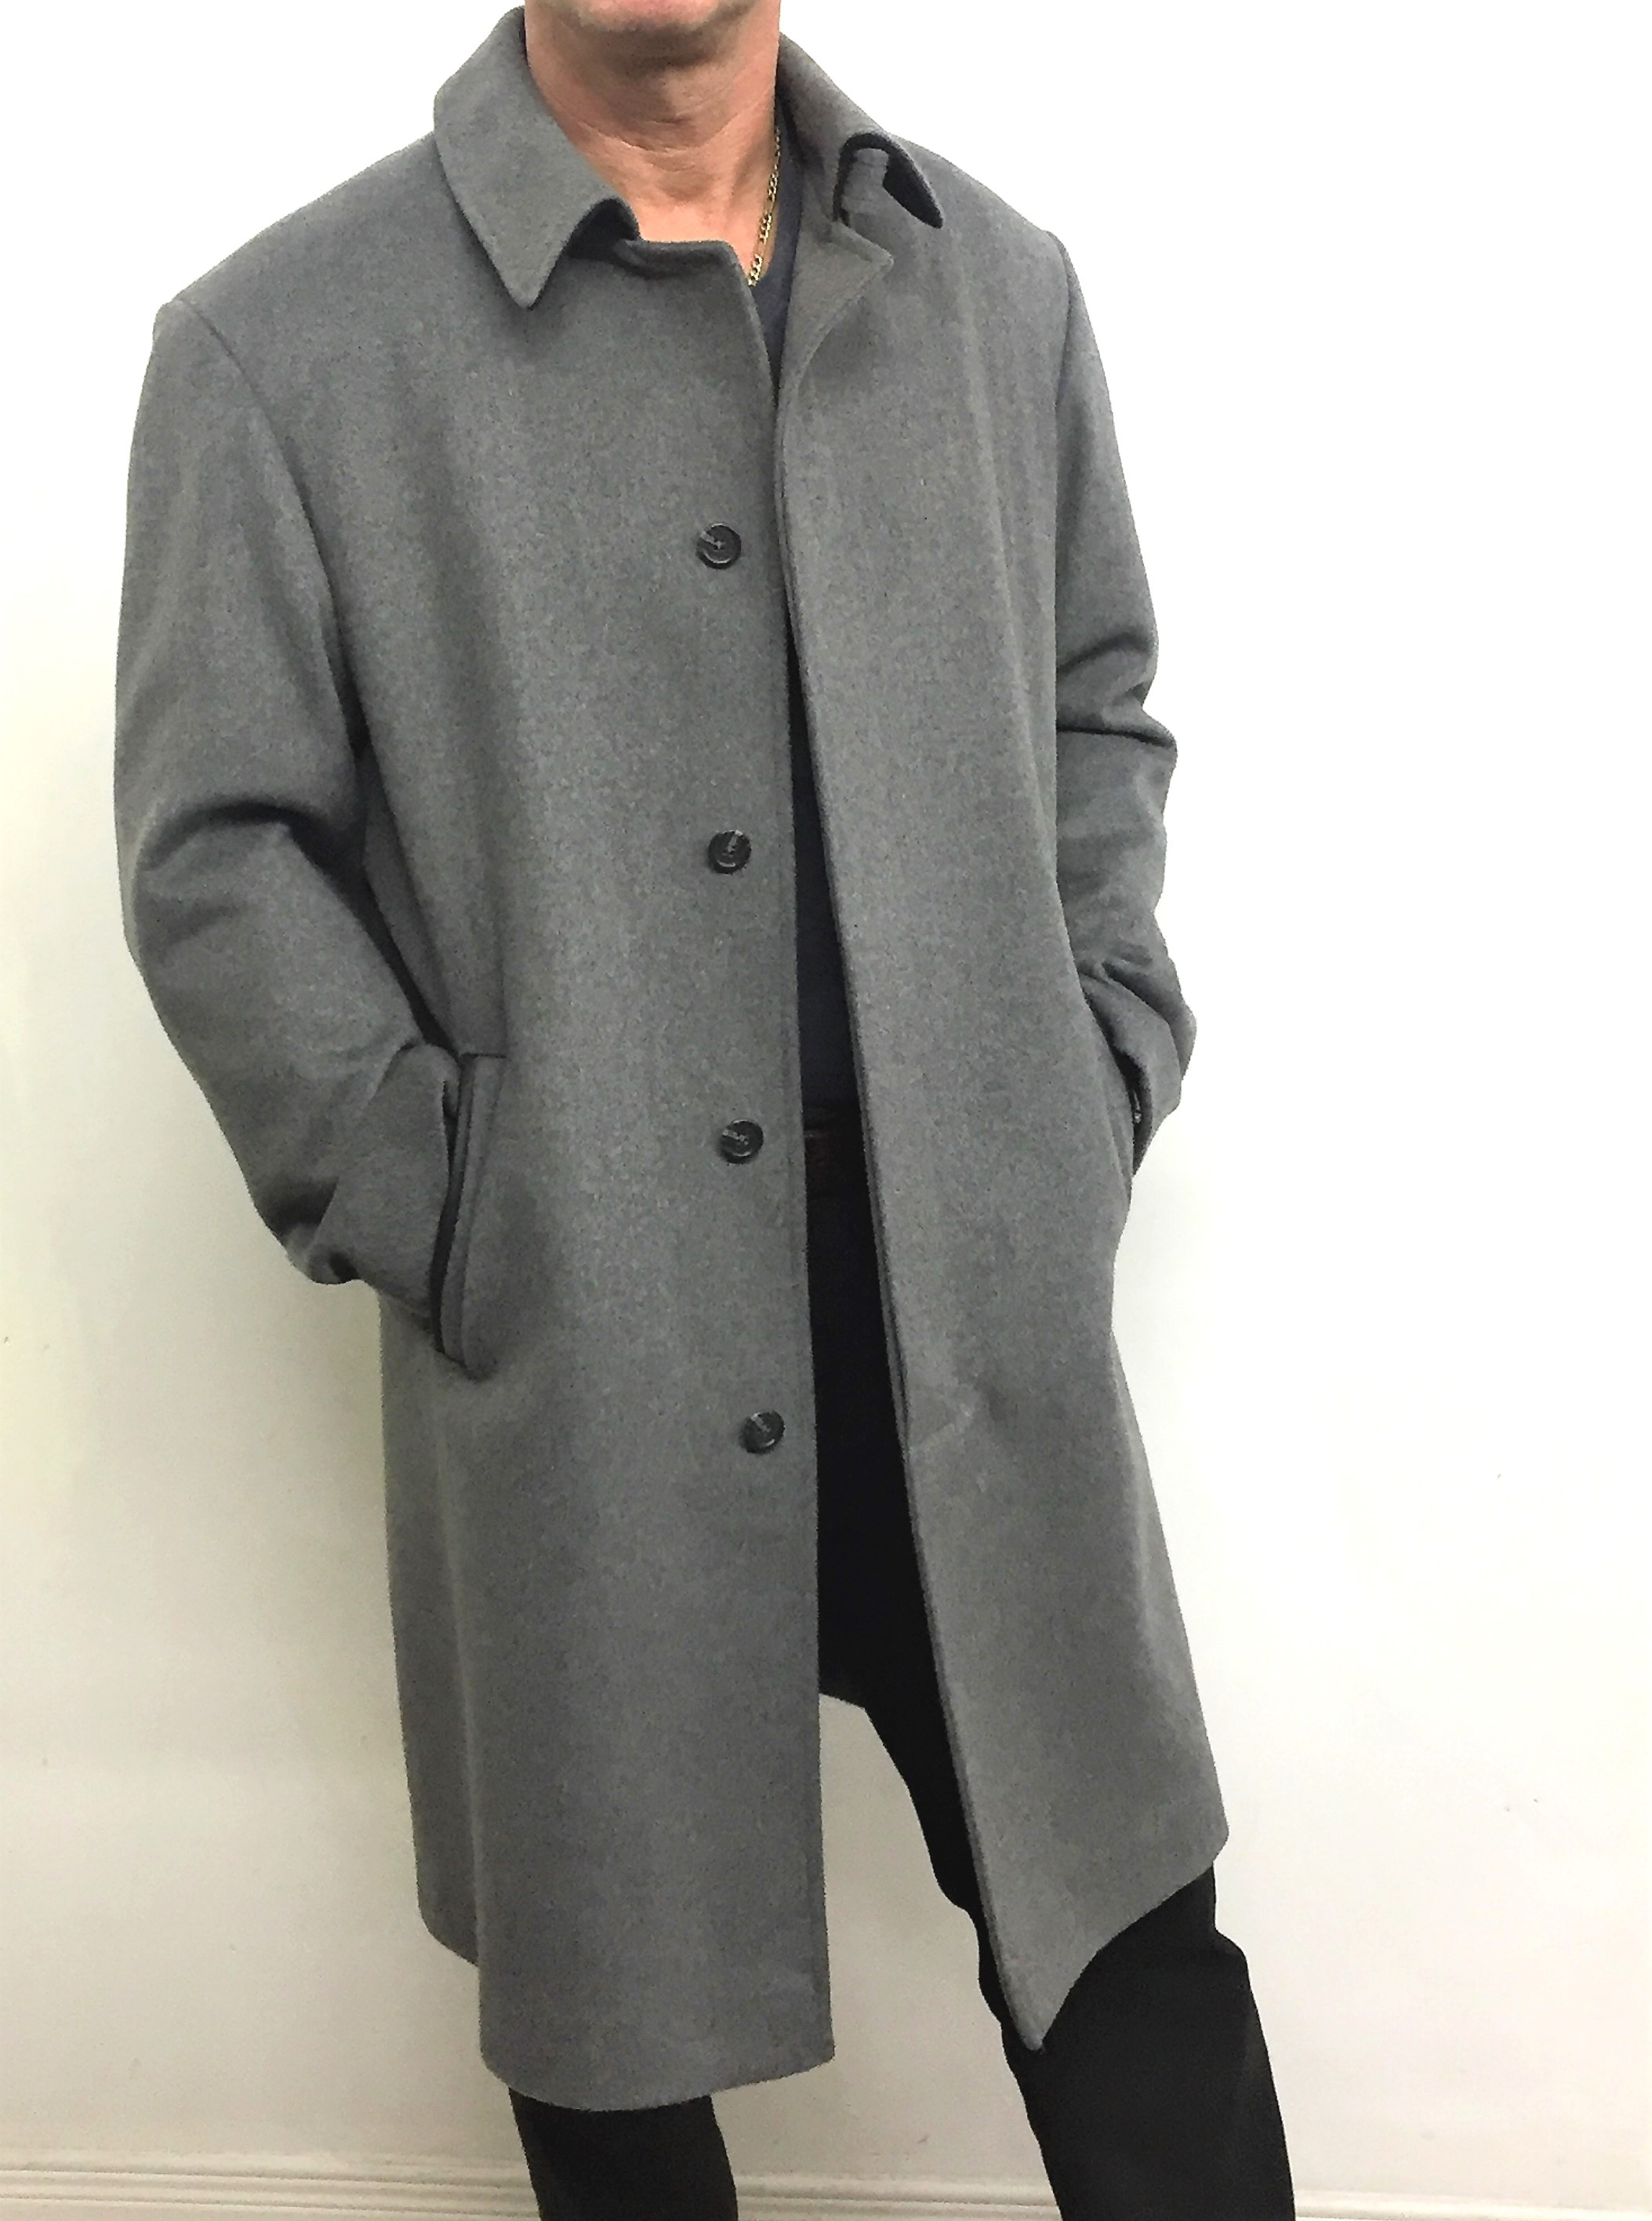 Style #M20189  Heather Grey 50% Cashmere & Wool  Features: Luxurious cashmere/wool  knee length overcoat.  Fly front button closure. Contrasting black under collar.  Genuine lambskin pockets, collar piece with belt.   In-stock colours:  Heather Grey, Black, Camel, Midnight Blue, Charcoal, Brown Tweed  Various Fabrics: 50% Cashmere Wool, Cashmere wool, 100% Wool Gabardine, 100% Wool Crepe   Sizes:  S, M, L  $ 589 and up